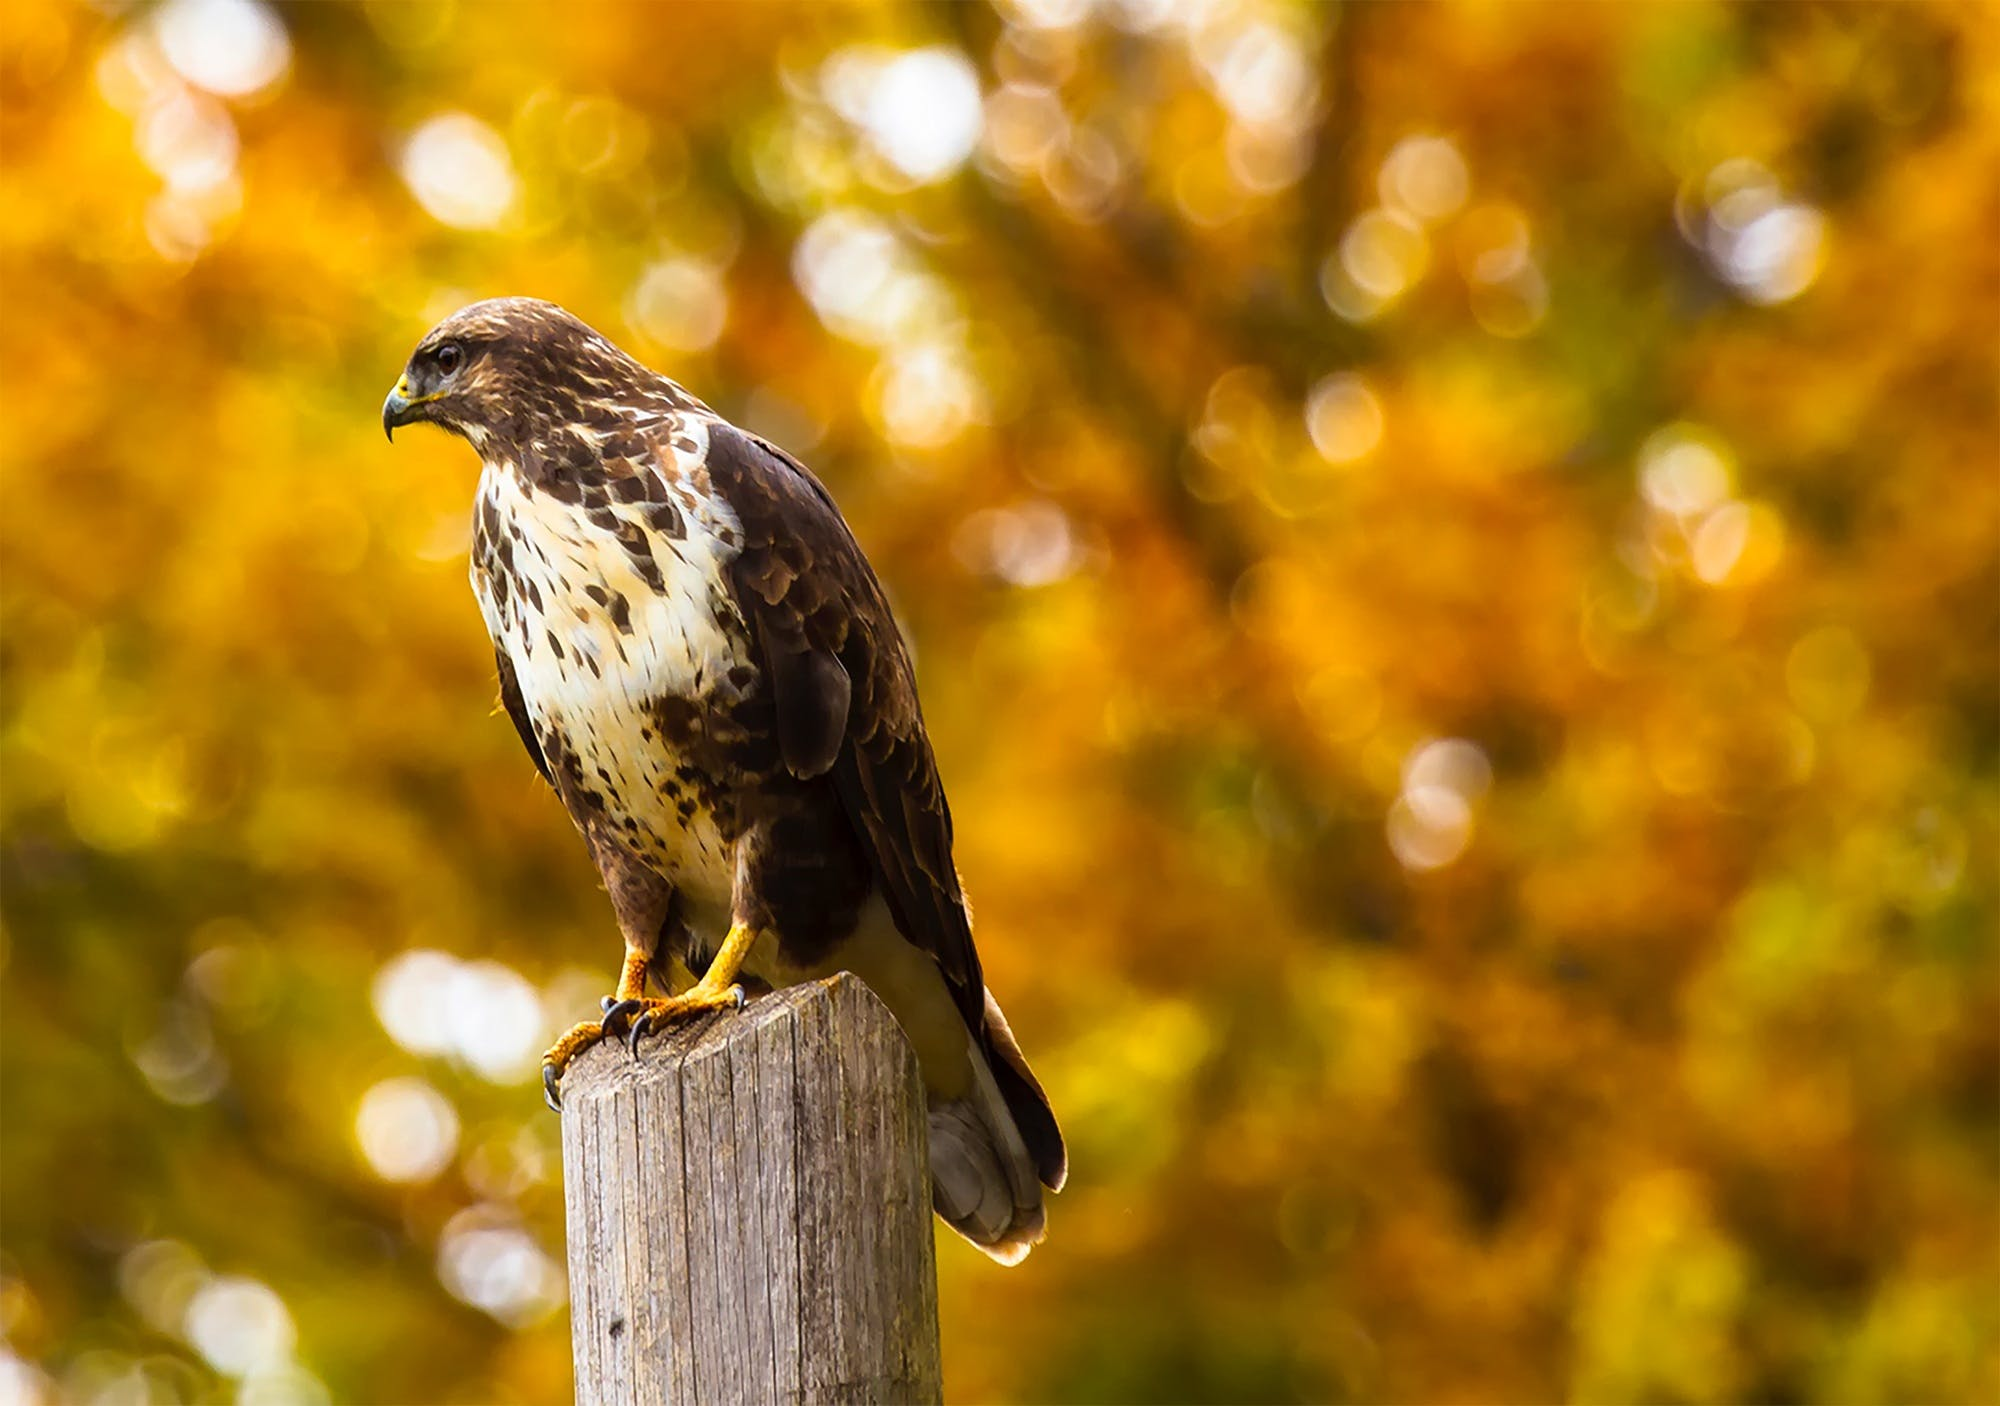 Close-up of Eagle Perching on Outdoors